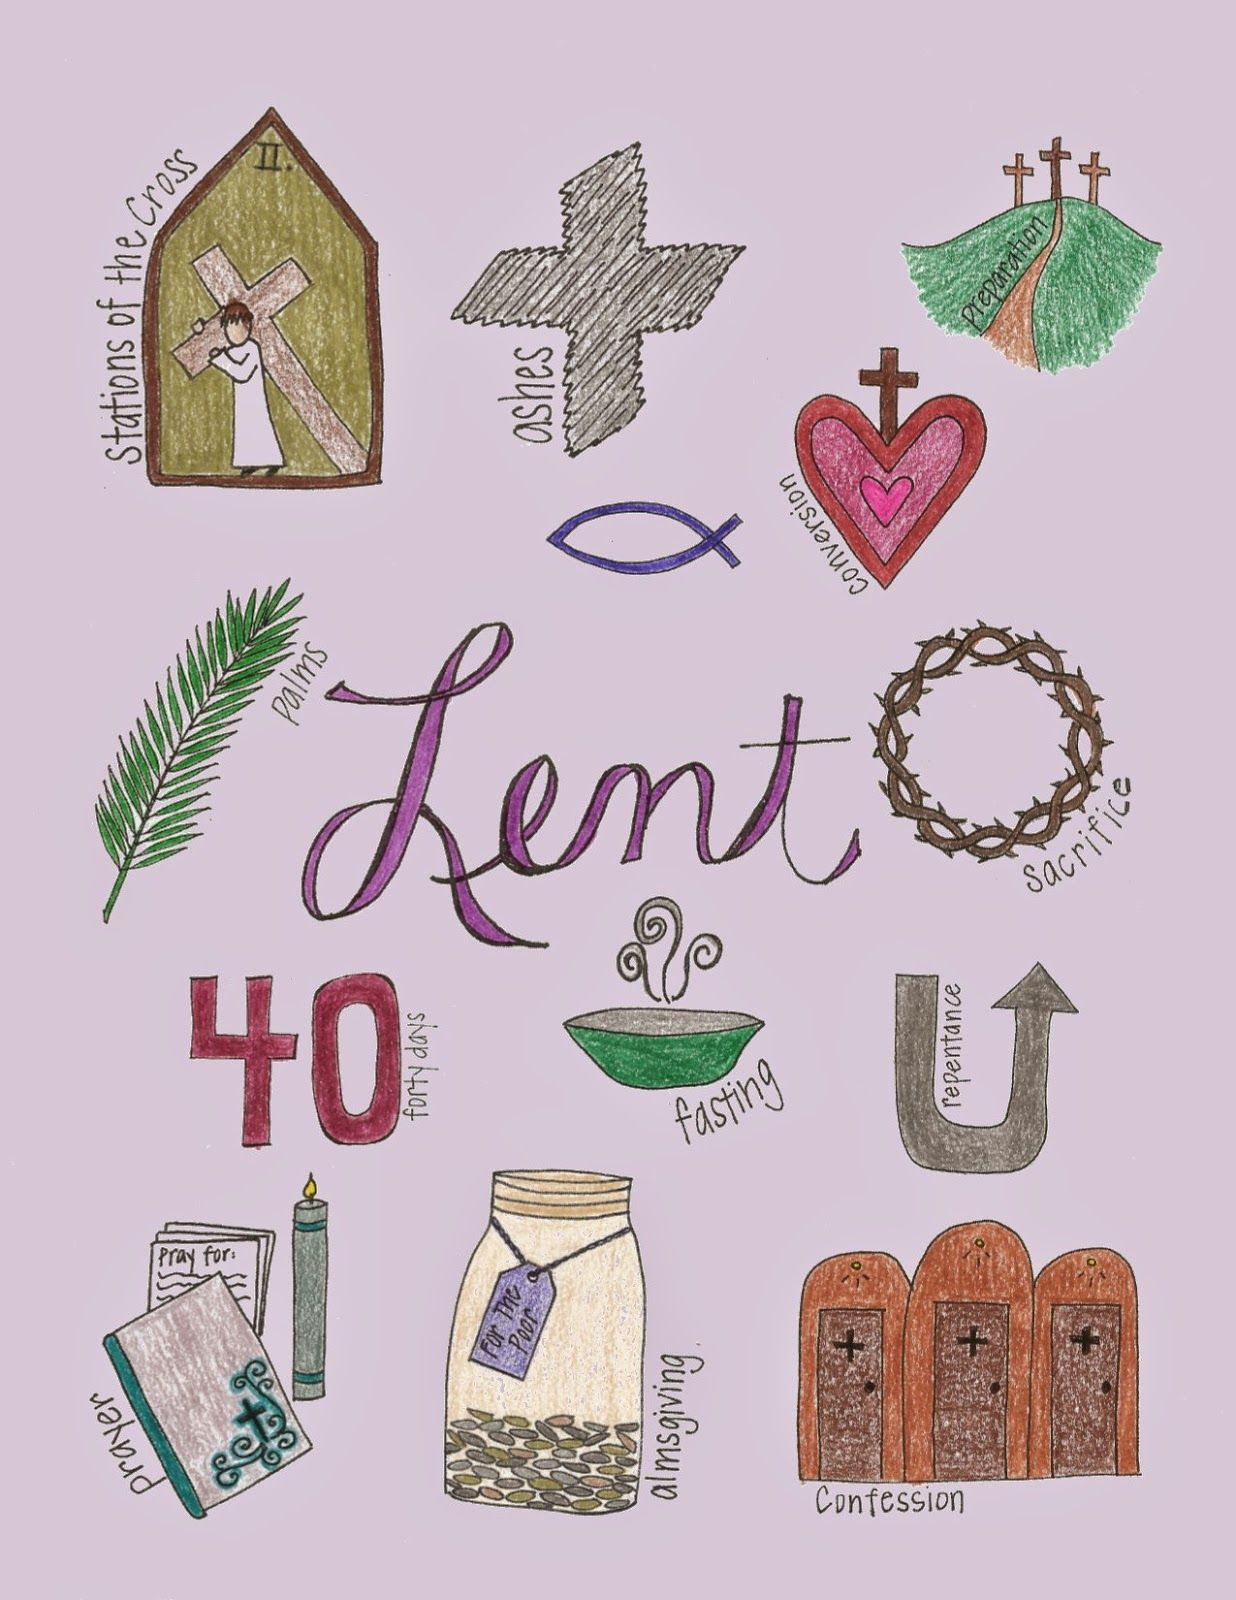 What Lent Looks Like Free Printable With The Signs And Symbols Of The Season In Color And Black